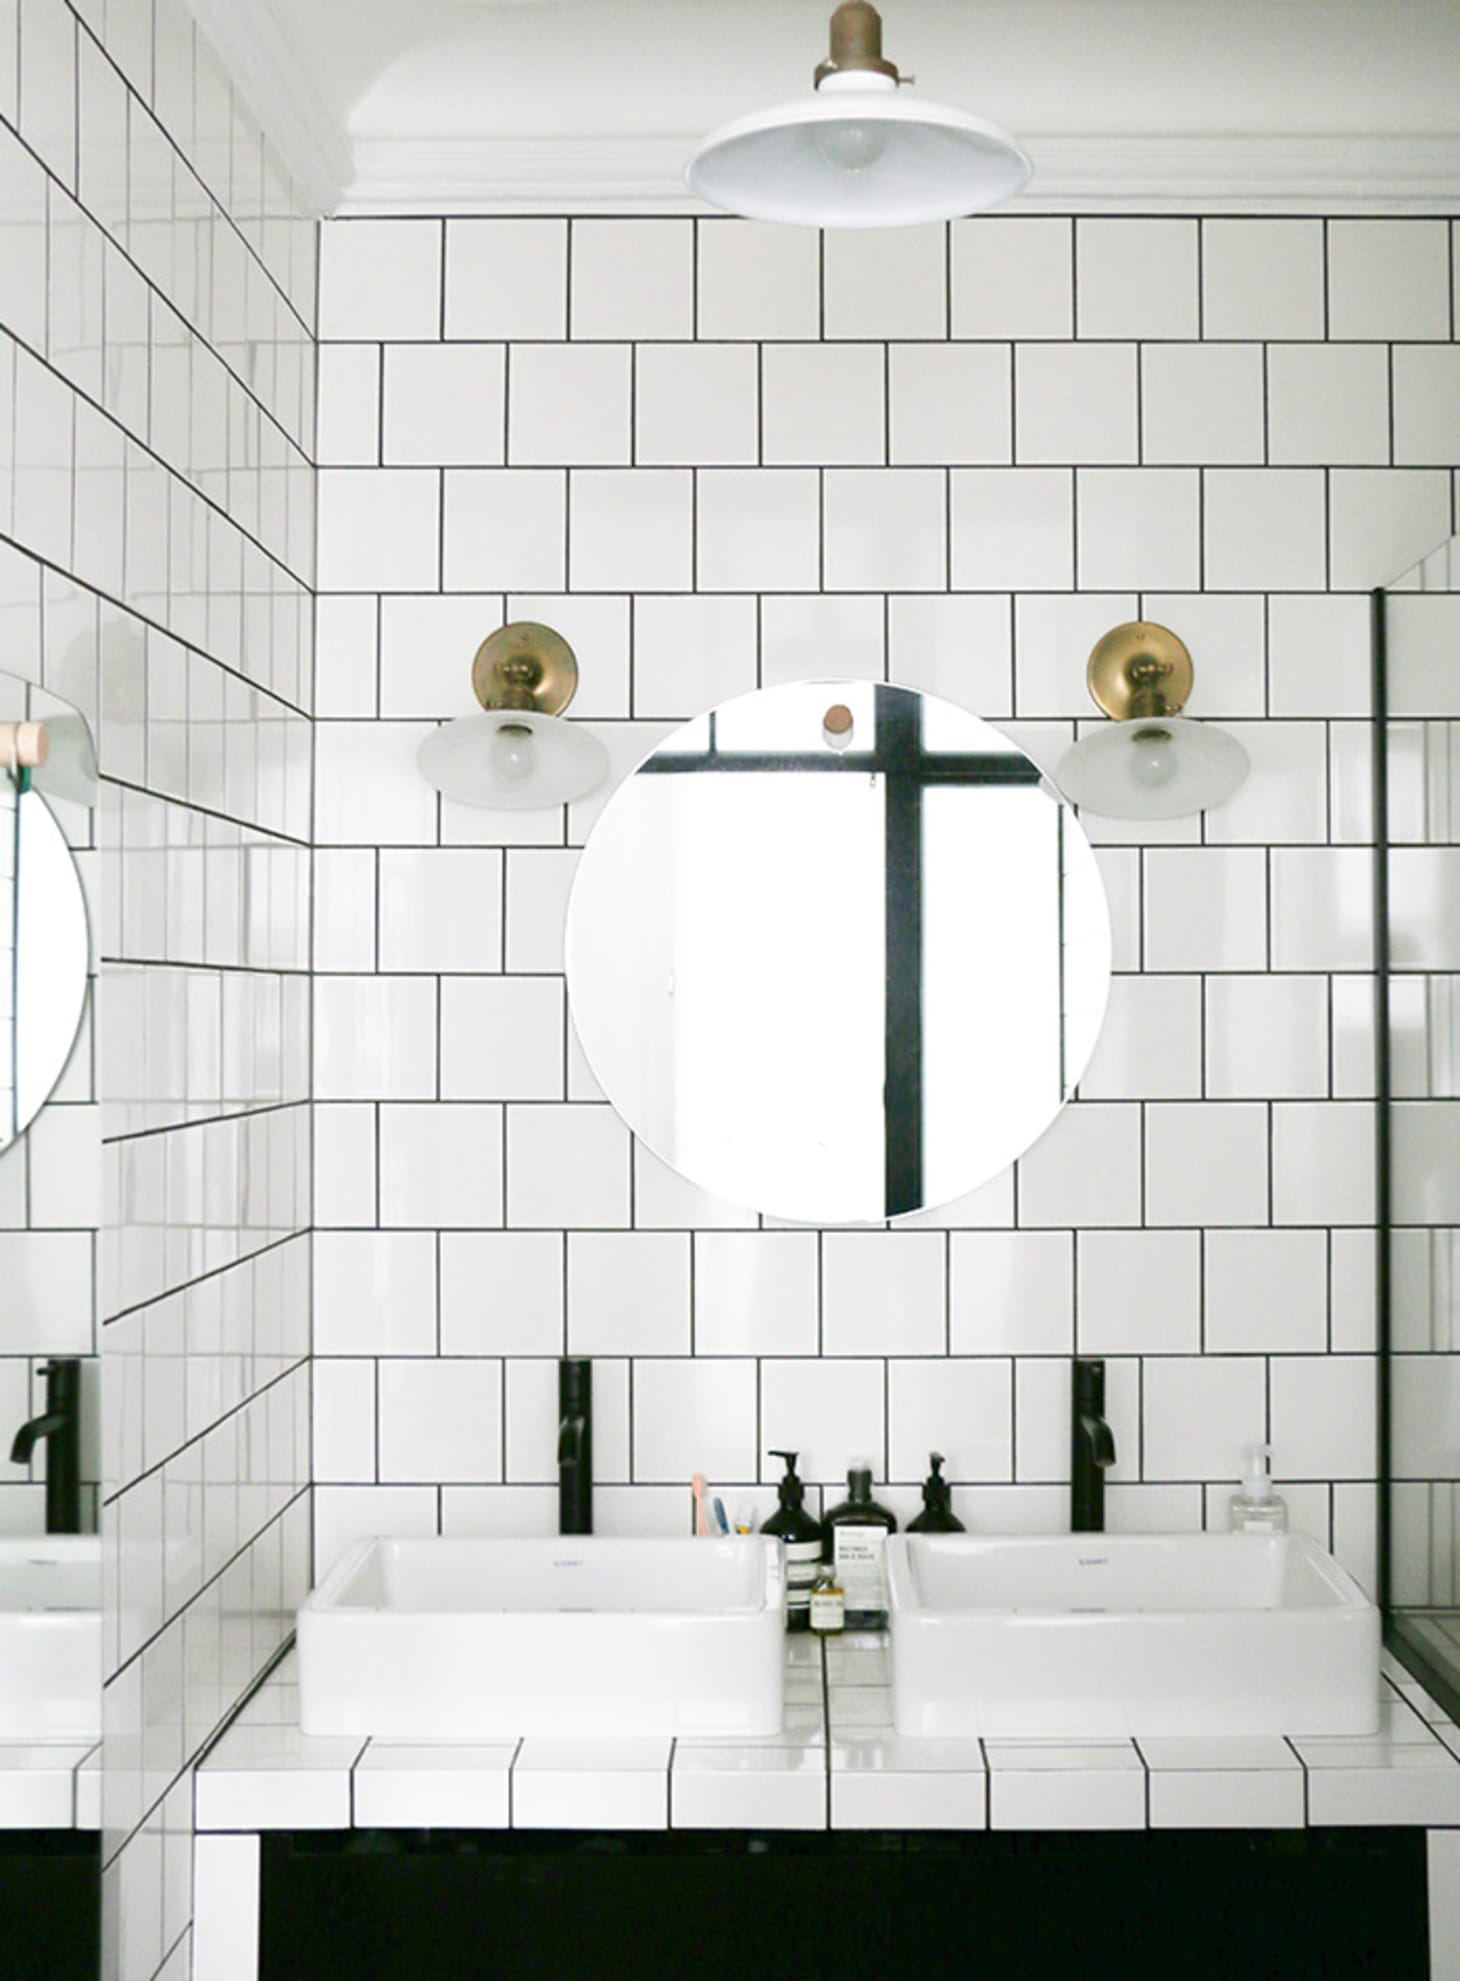 10x10 Bathroom: White Square Tiles: A Great Alternative To Subway Tile